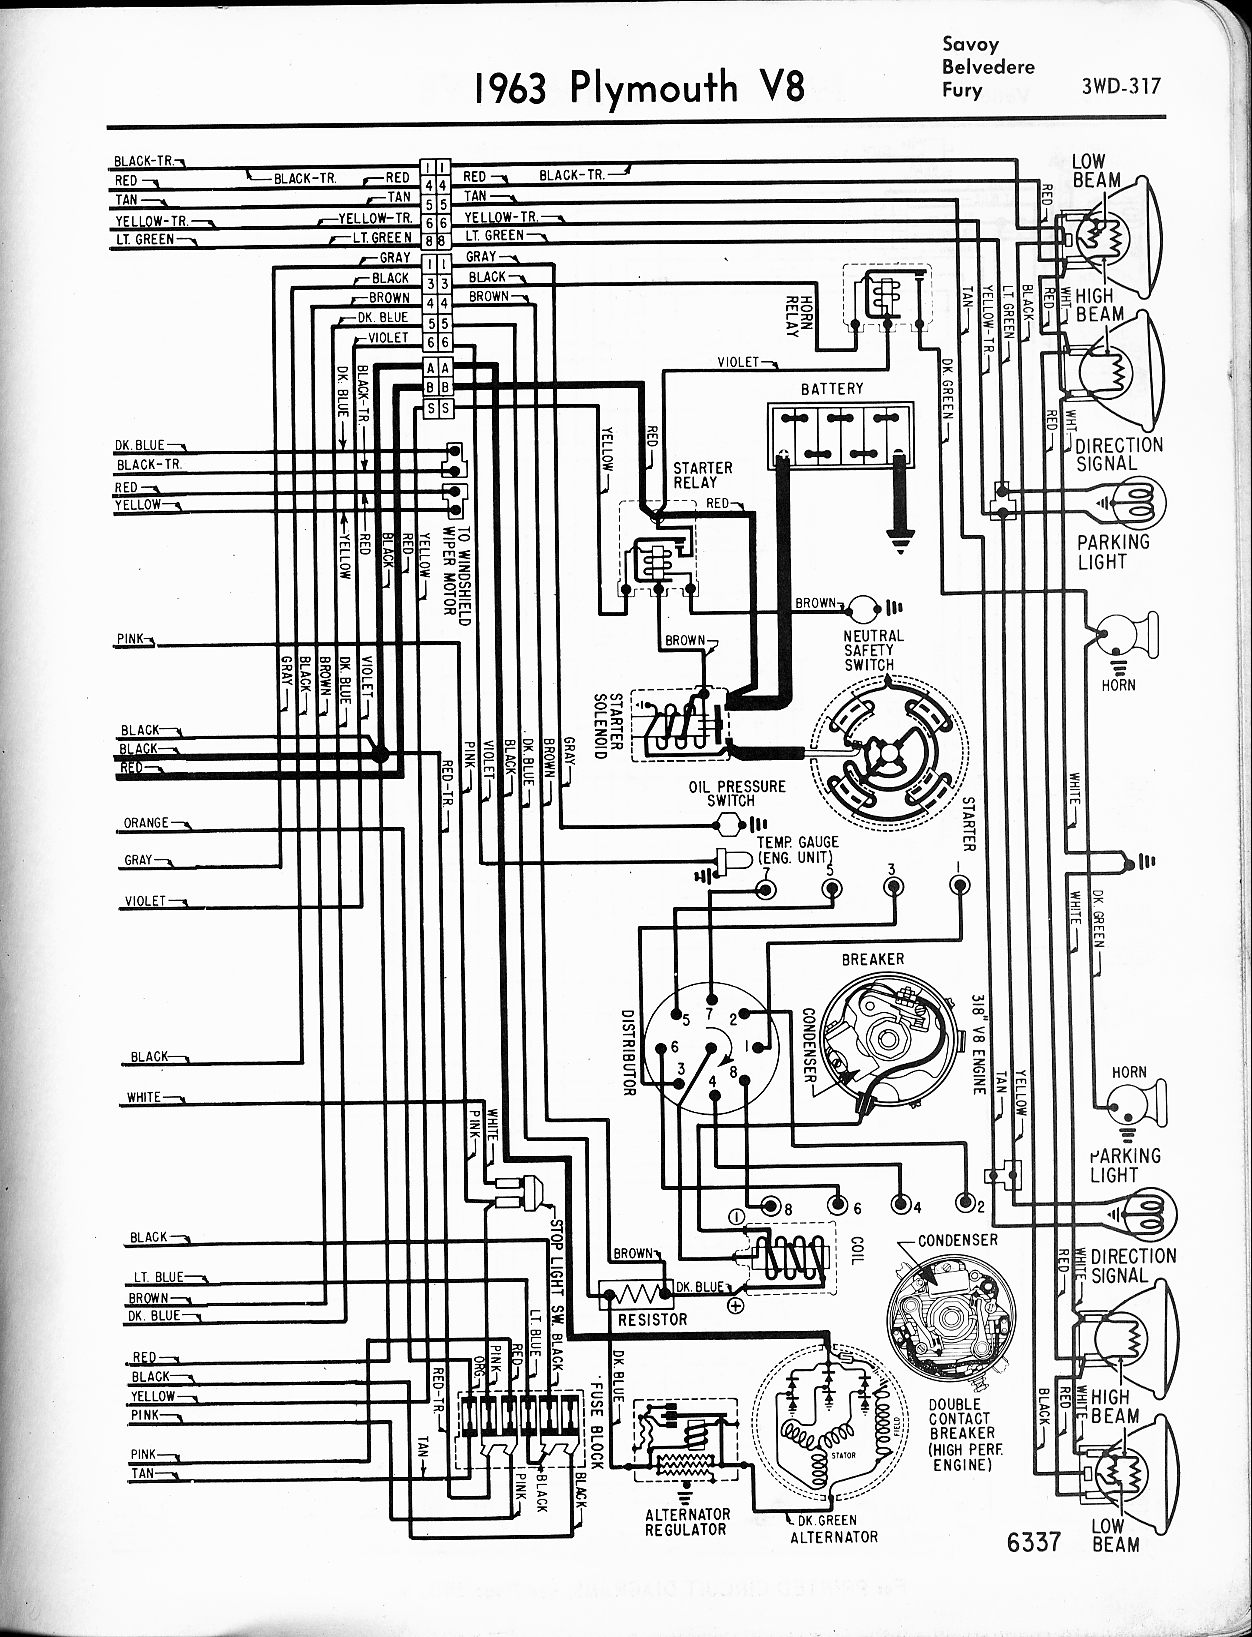 74 Plymouth Satellite Wiring Diagram | Wiring LibraryWiring Resources